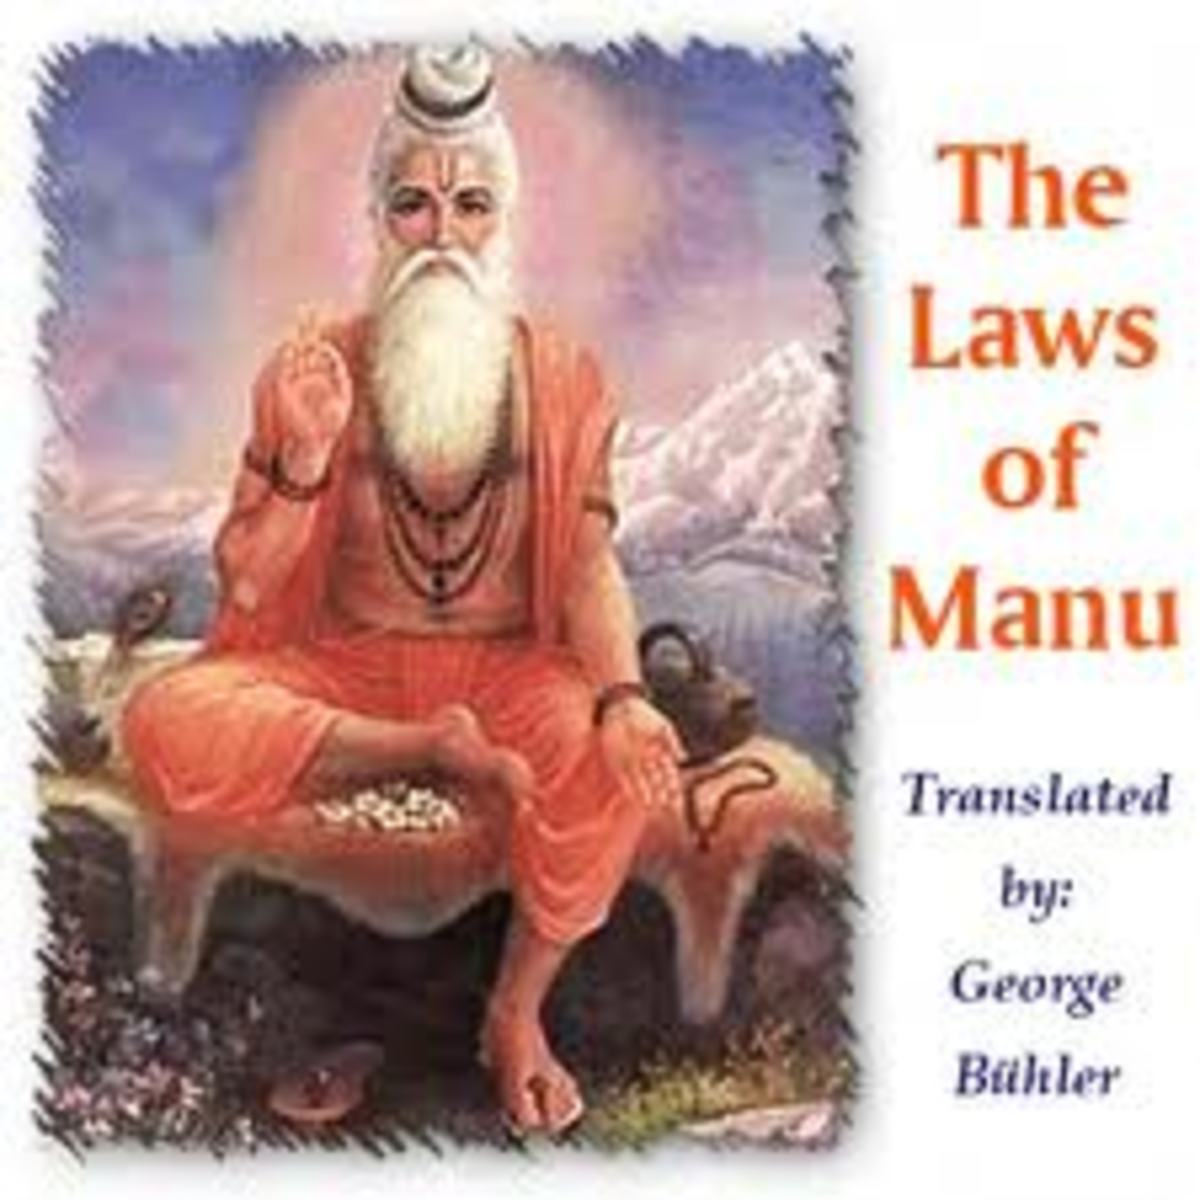 The Laws of Manu is an Indian religious book, Manu is the sage that explains the creation of the world and everything else including religious rules and the creation of mankind